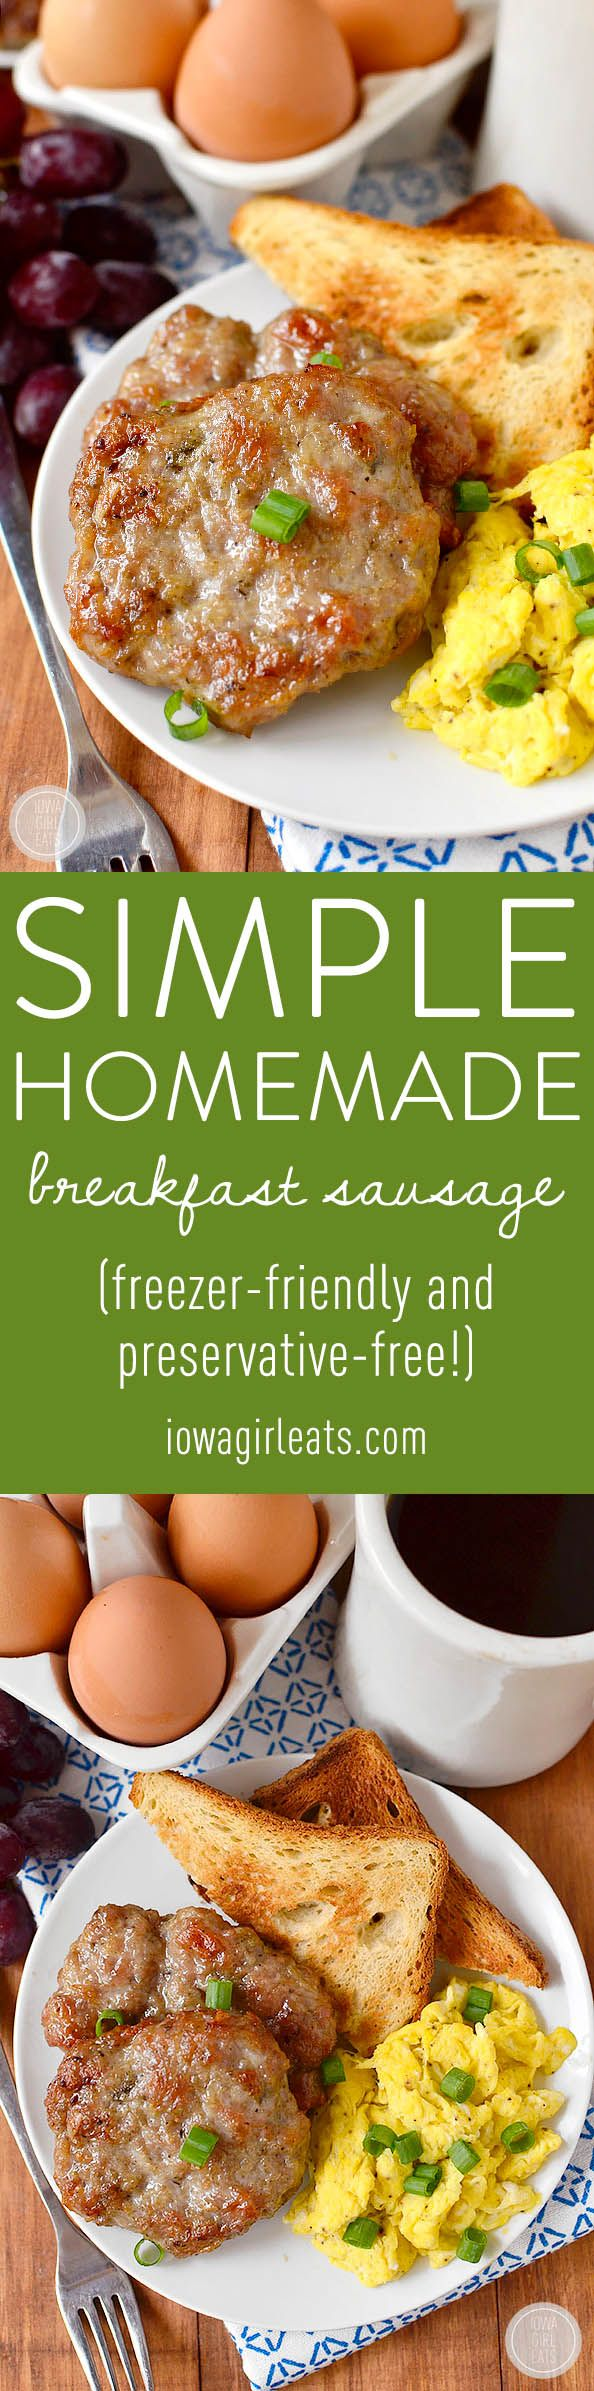 Simple Homemade Breakfast Sausage is made with pantry staples, freezer-friendly, and preservative and gluten-free!| iowagirleats.com Ground turkey instead??